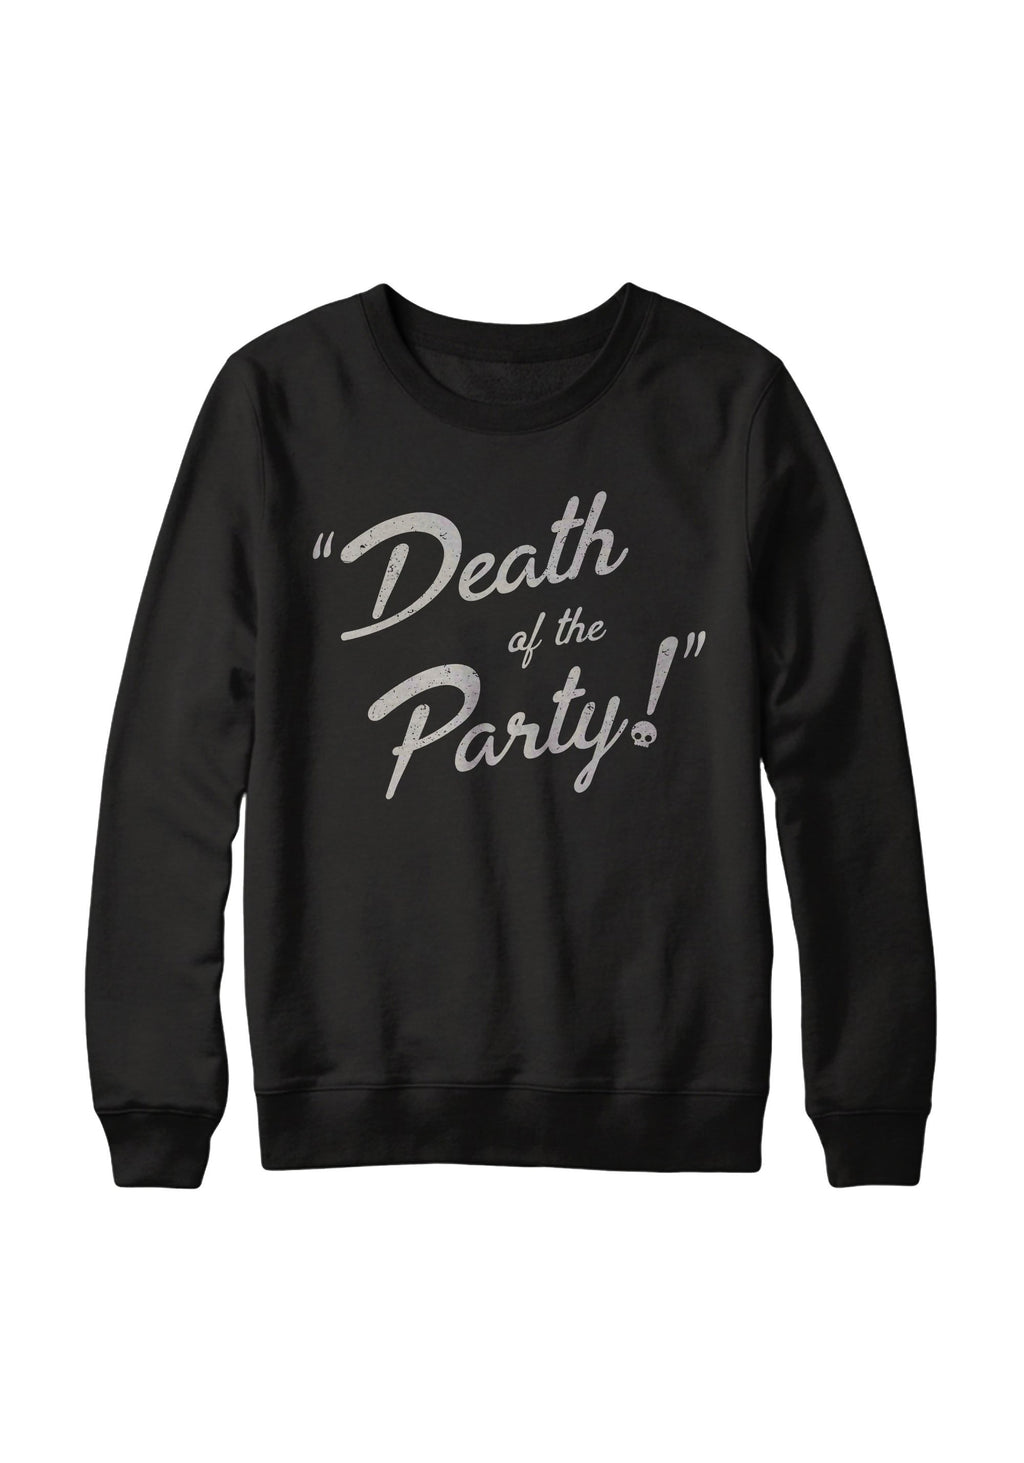 Death of the Party! Sweatshirt